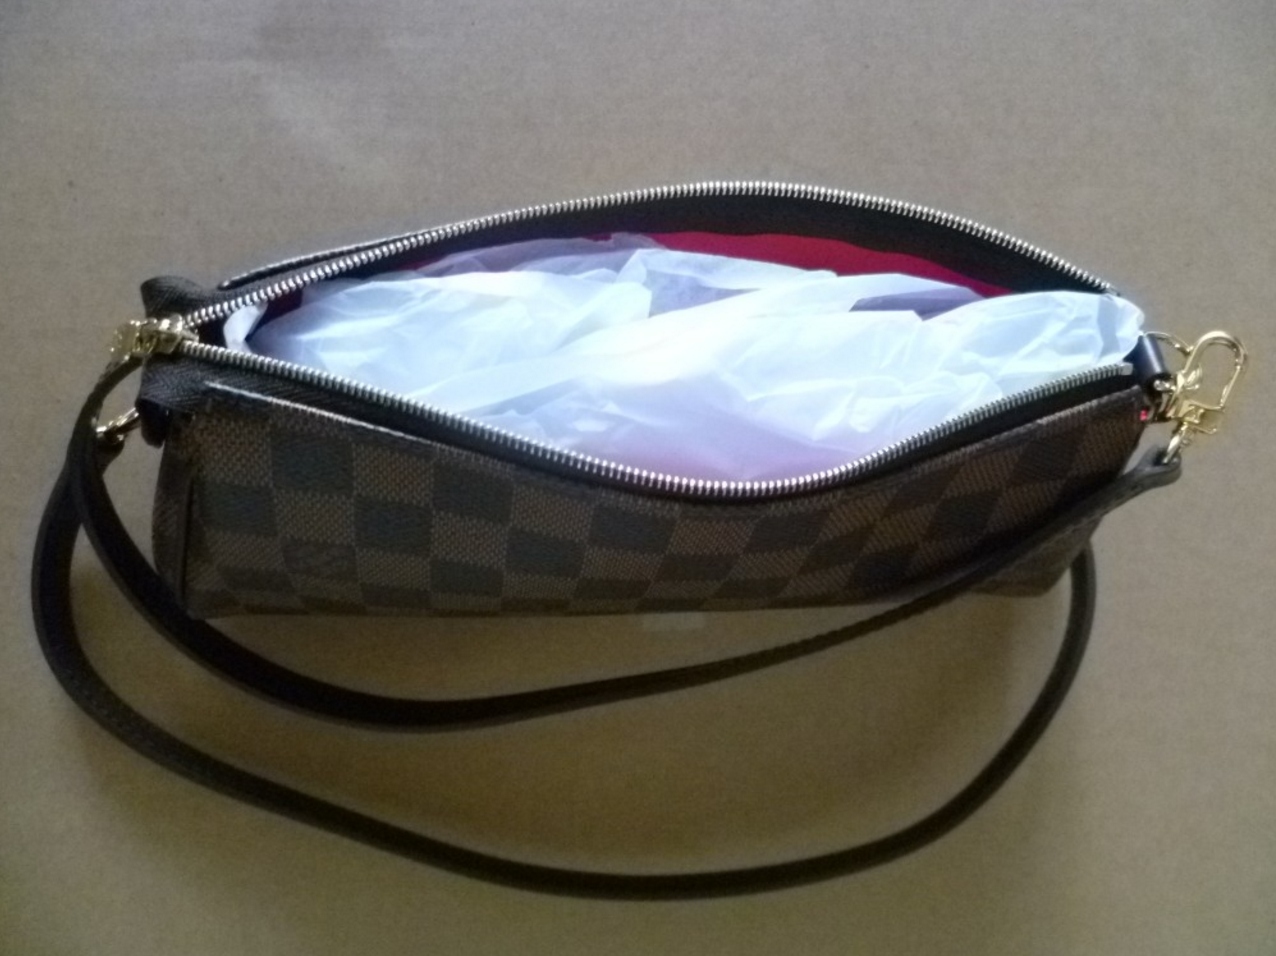 0d82792cf0b9 Make sure when you are not using your bag to stuff it to keep its shape.  This prevents the handbag from getting warped or loose its shape.